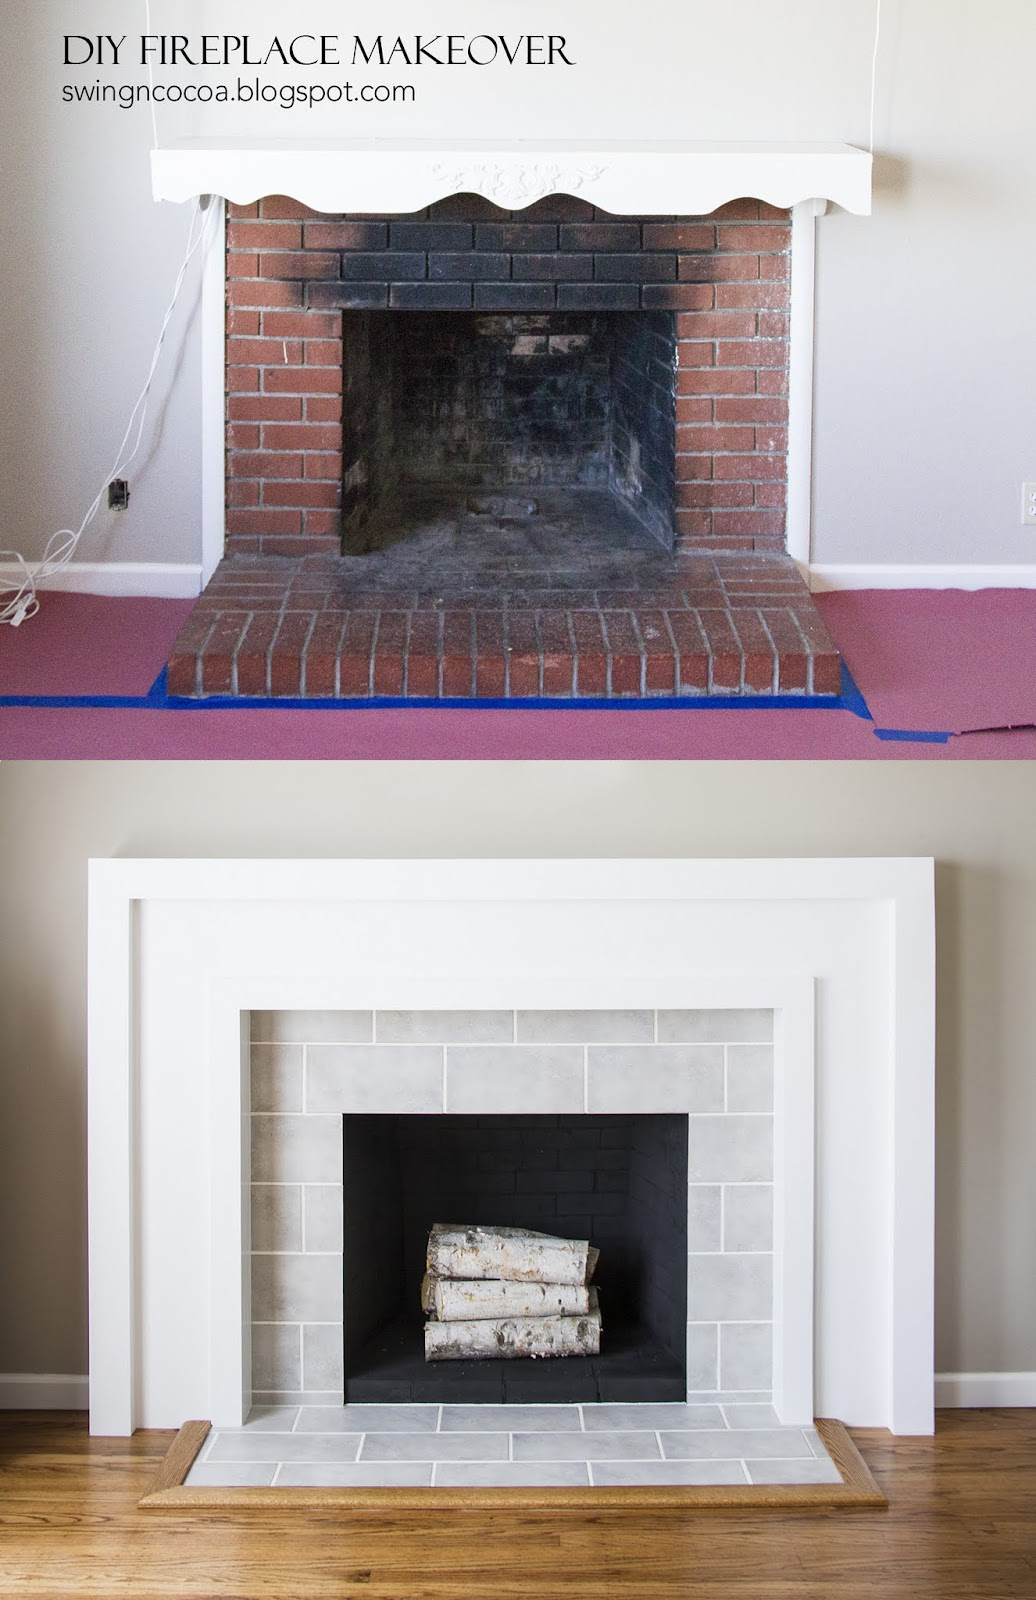 Fireplace Makeover Part 3 Deliciously Done